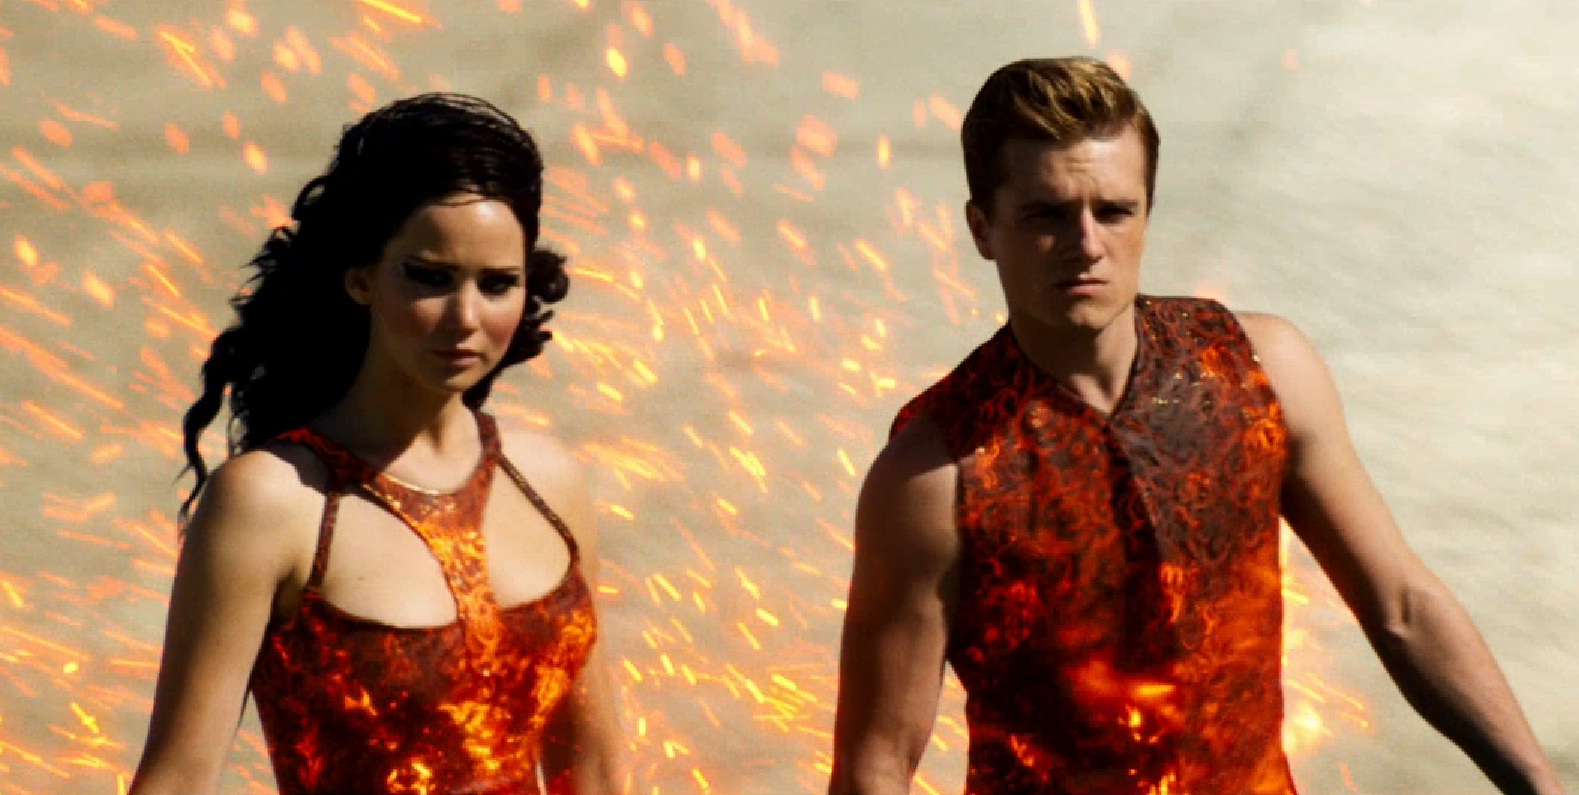 The Hunger Games Catching Fire 2013 Film Phage